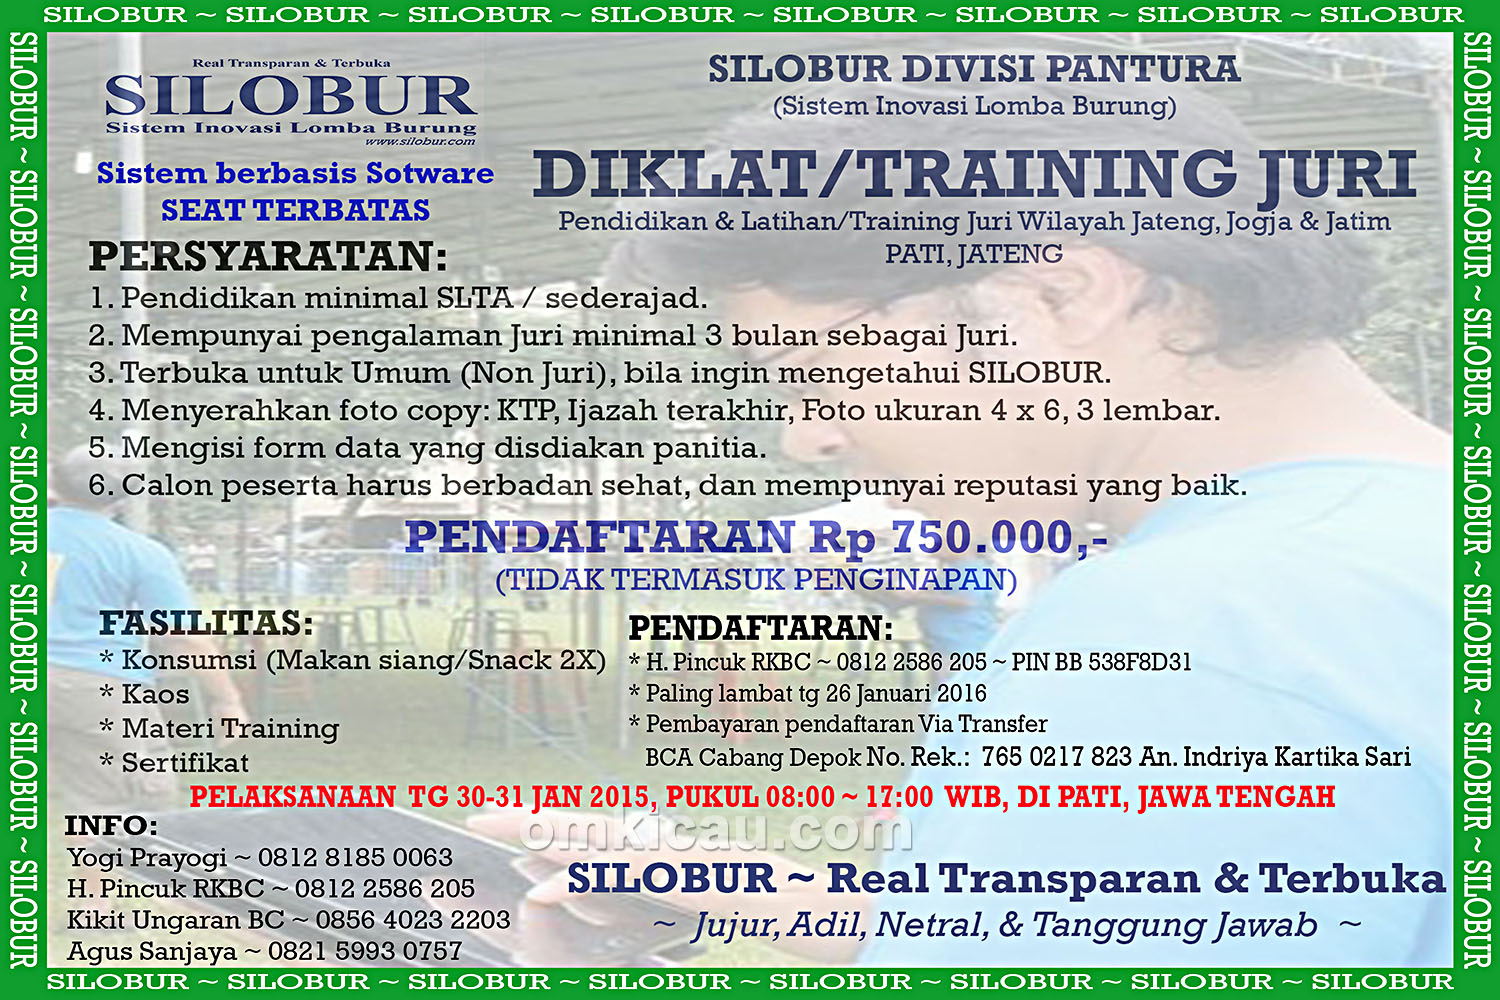 TRAINING JURI SILOBUR 2016